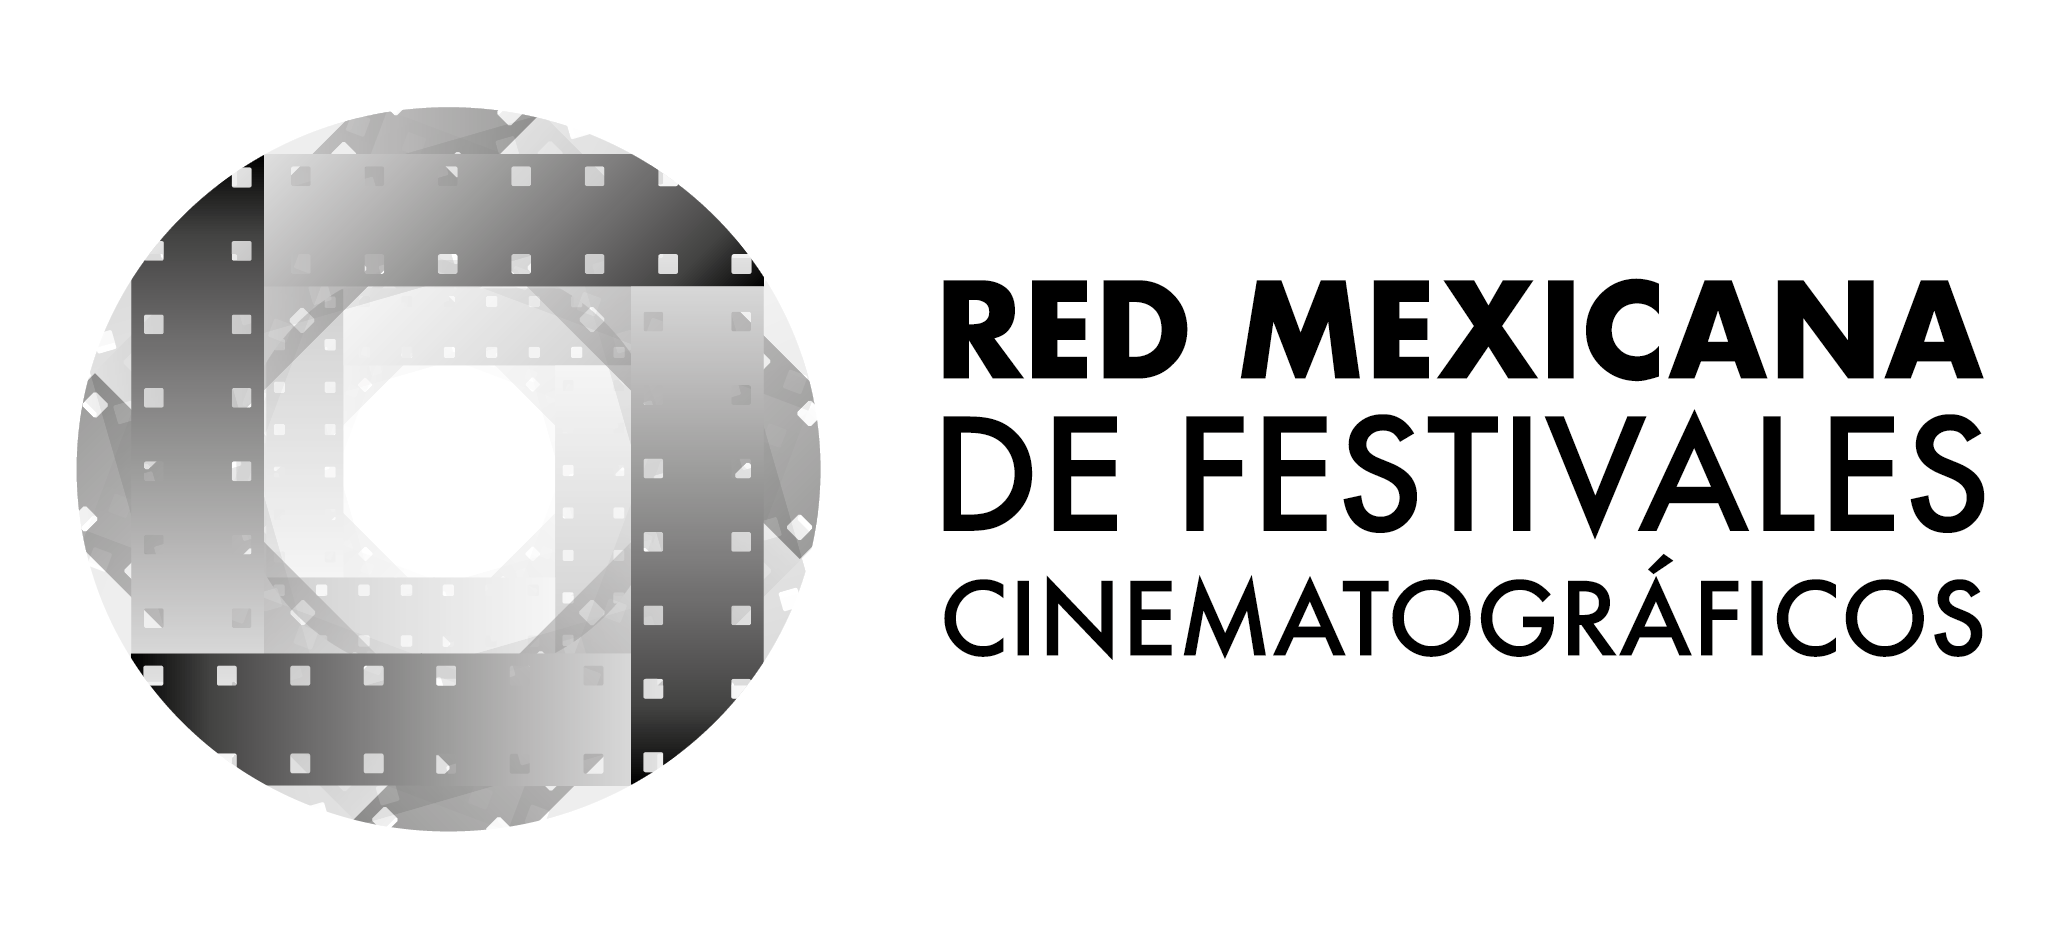 Red Mexicana de Festivales Cinematográficos